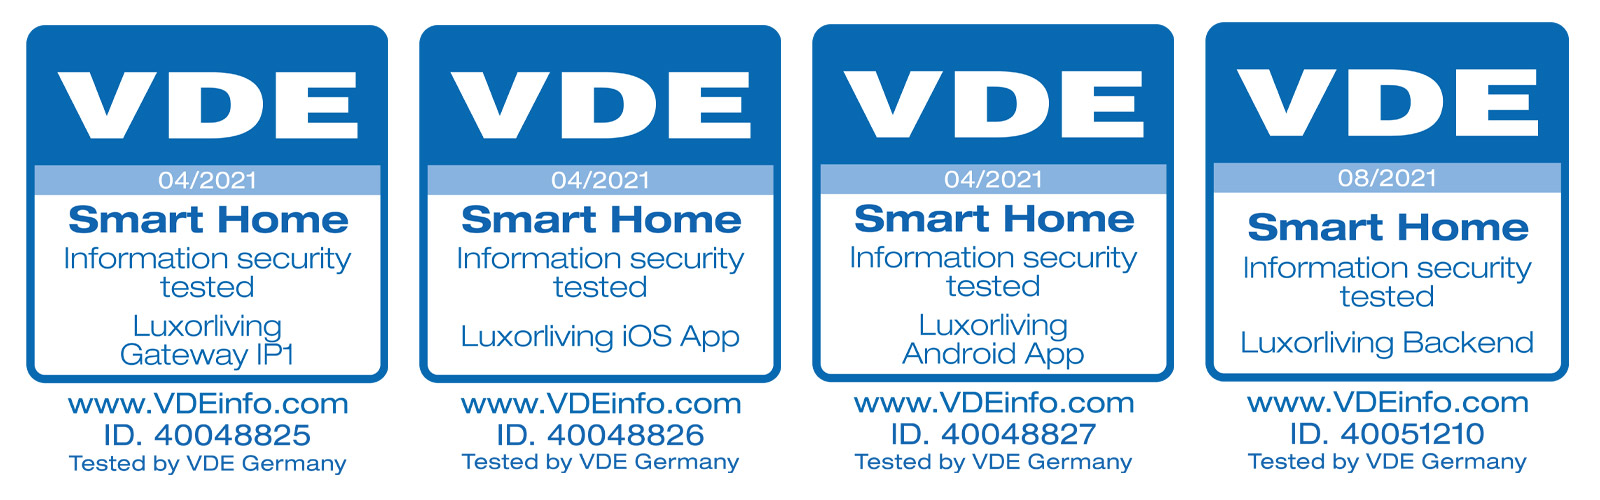 Proven Security: Our LUXORliving Smart Home System Has Been VDE-certified